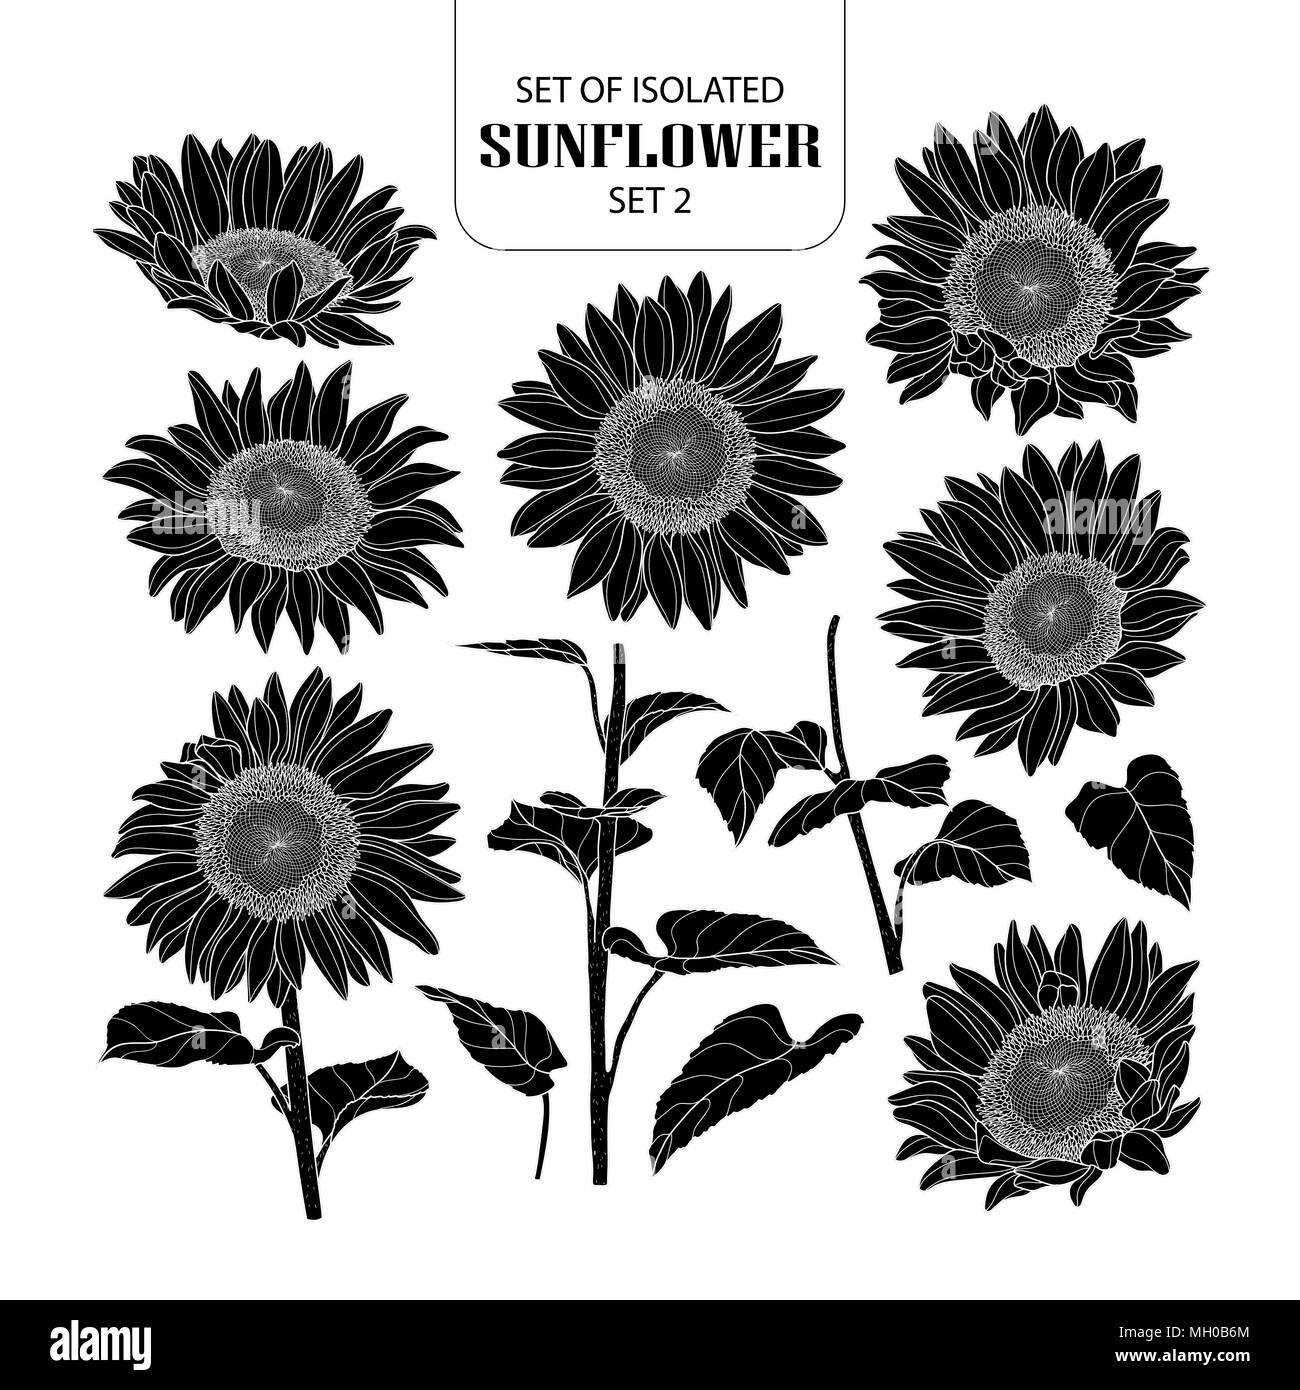 Set of isolated silhouette sunflower set 2. Cute hand ...